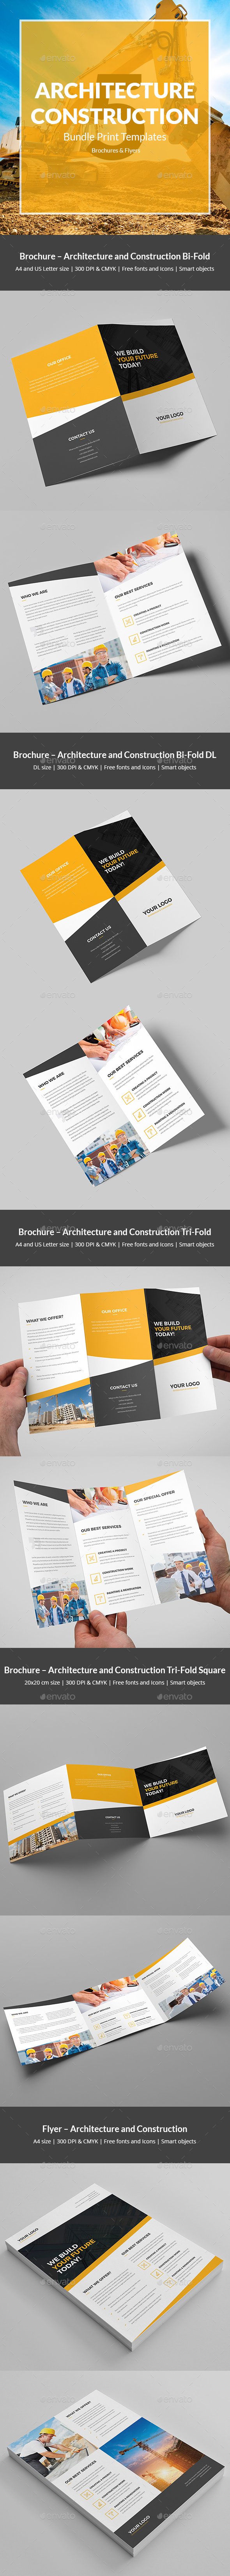 Architecture and Construction – Bundle Print Templates 5 in 1 - Corporate Brochures